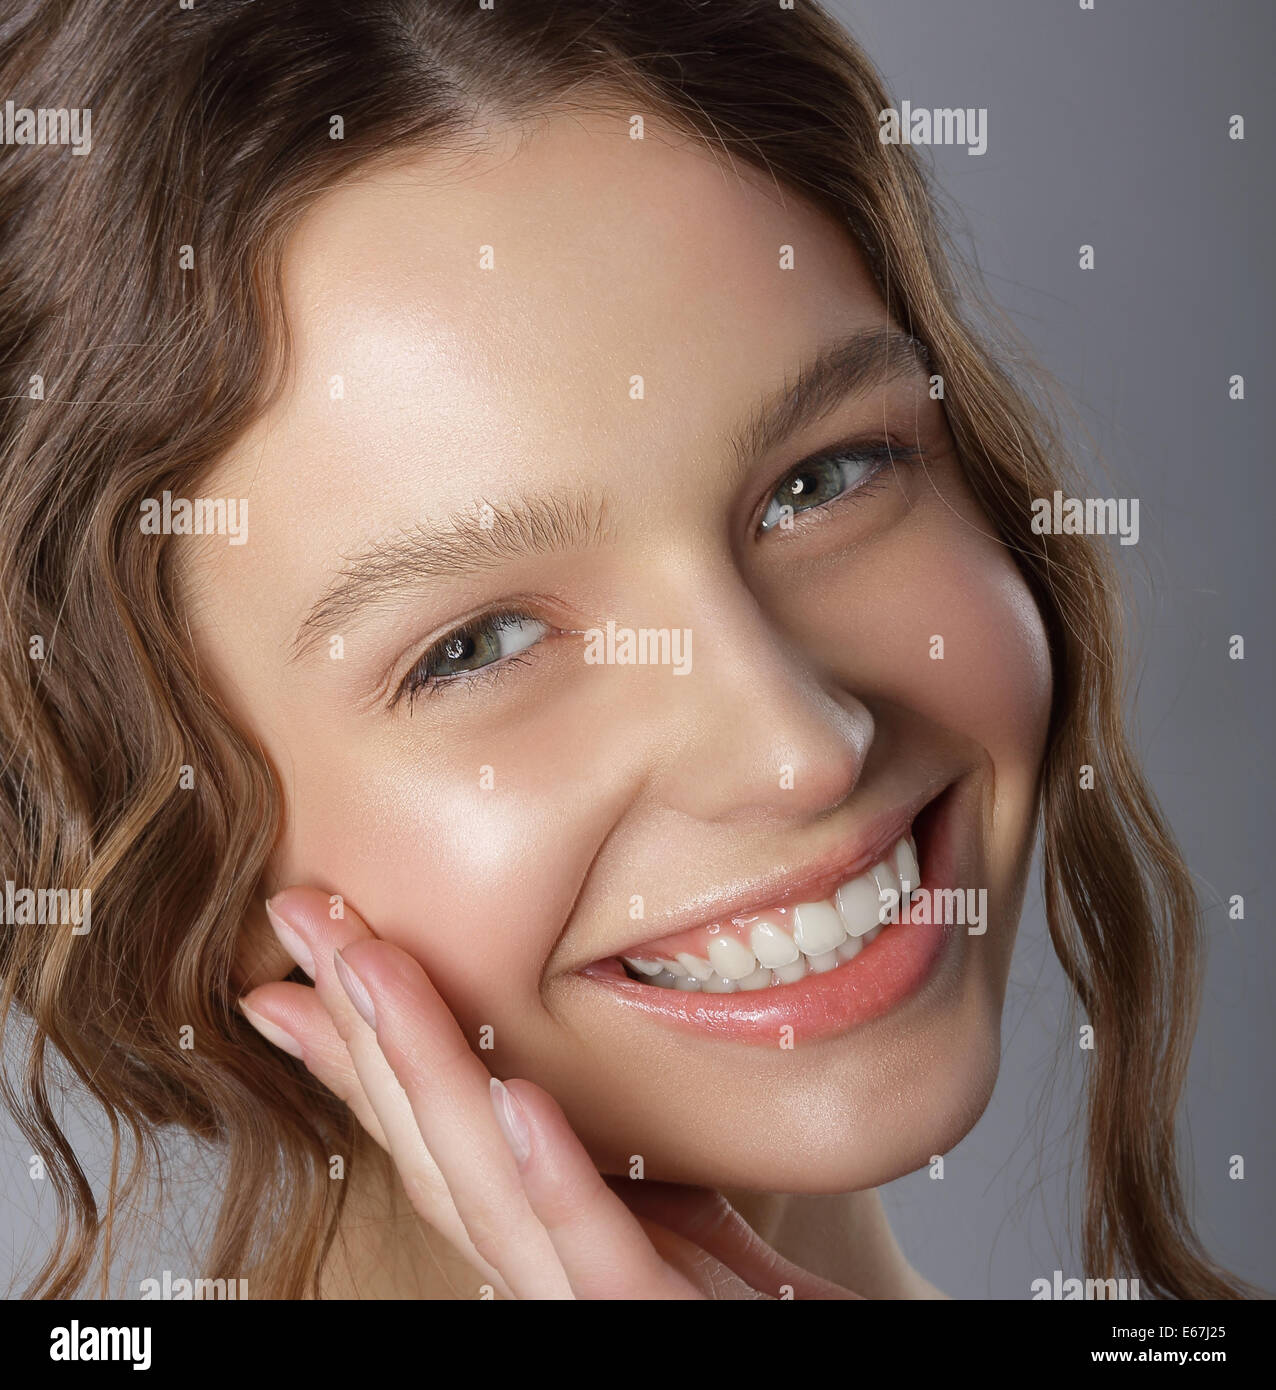 Sincere Winning Smile. Face of Happy Pleasant Young Woman - Stock Image